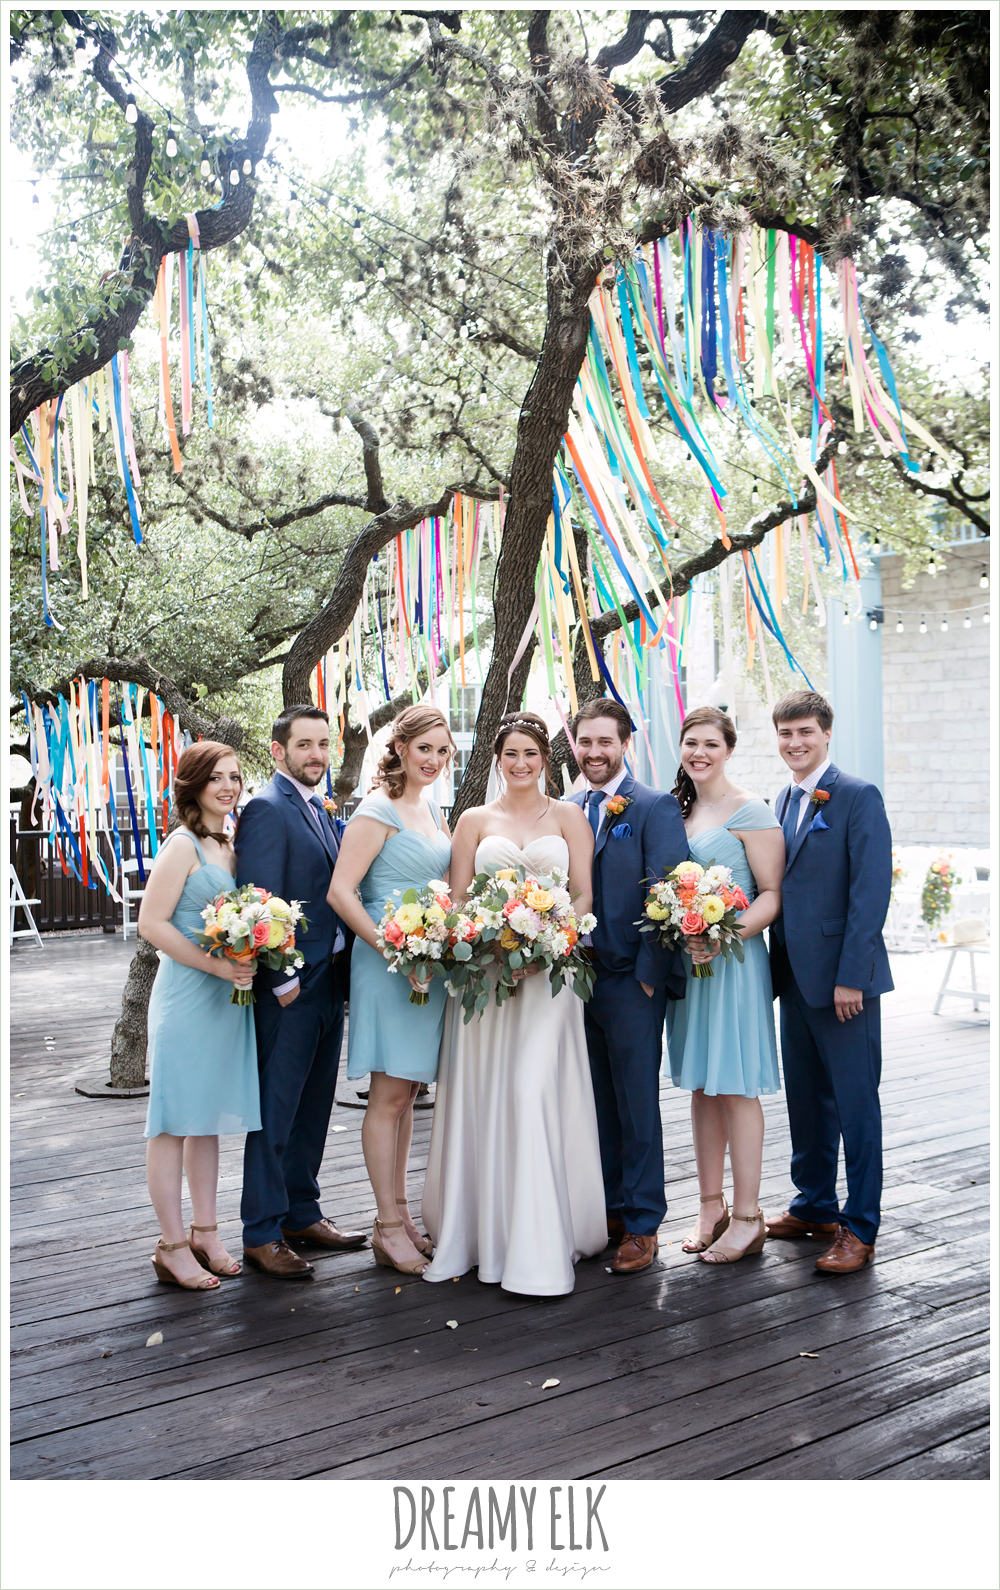 colorful streamers in trees ceremony decorations, groom in men's wearhouse navy suit pink shirt and navy tie, bill levkoff bridesmaid dress in glacier blue, sweetheart strapless justin alexander wedding dress in sand color, bridal party, colorful outdoor sunday morning brunch wedding, hyatt hill country club, san antonio wedding photo {dreamy elk photography and design}